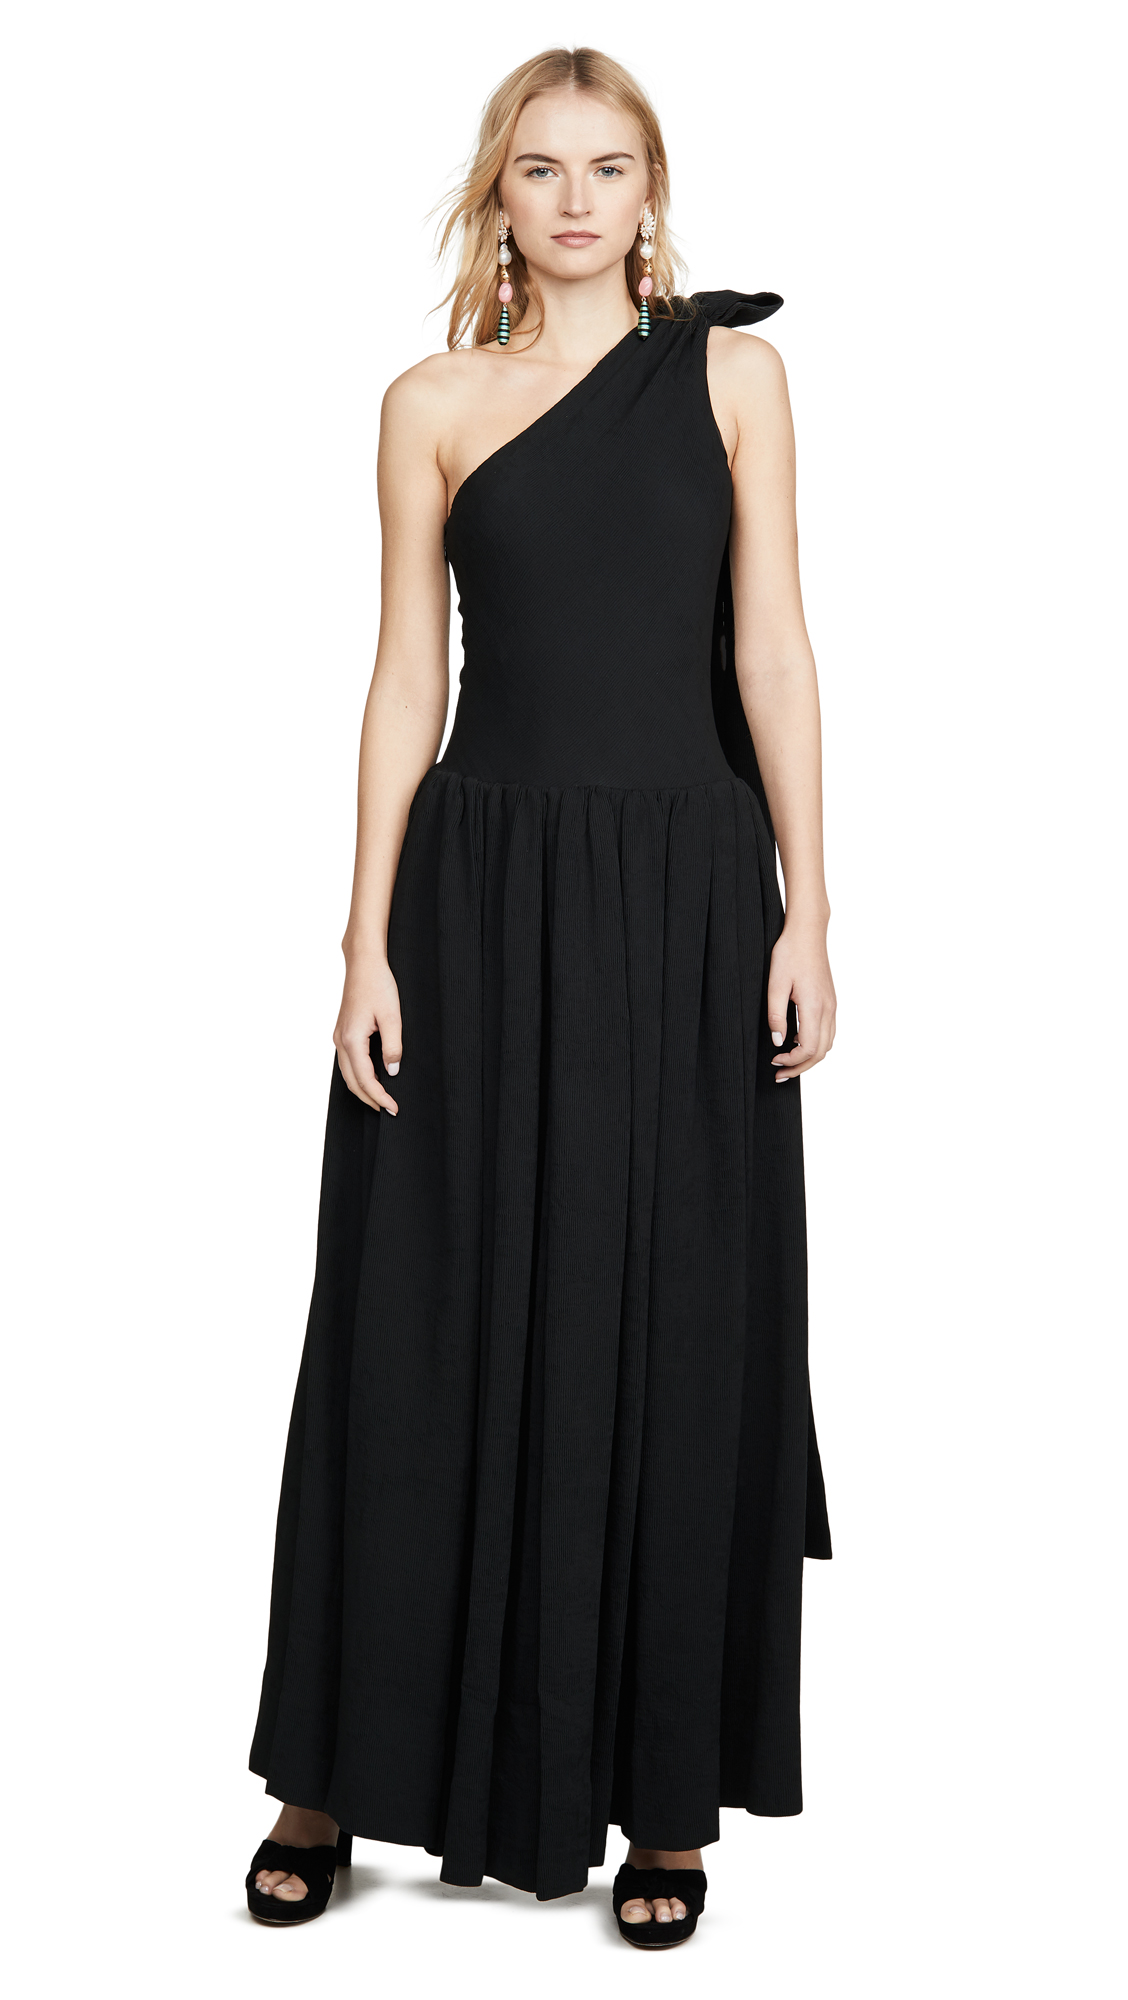 STAUD Sarah Dress - 50% Off Sale